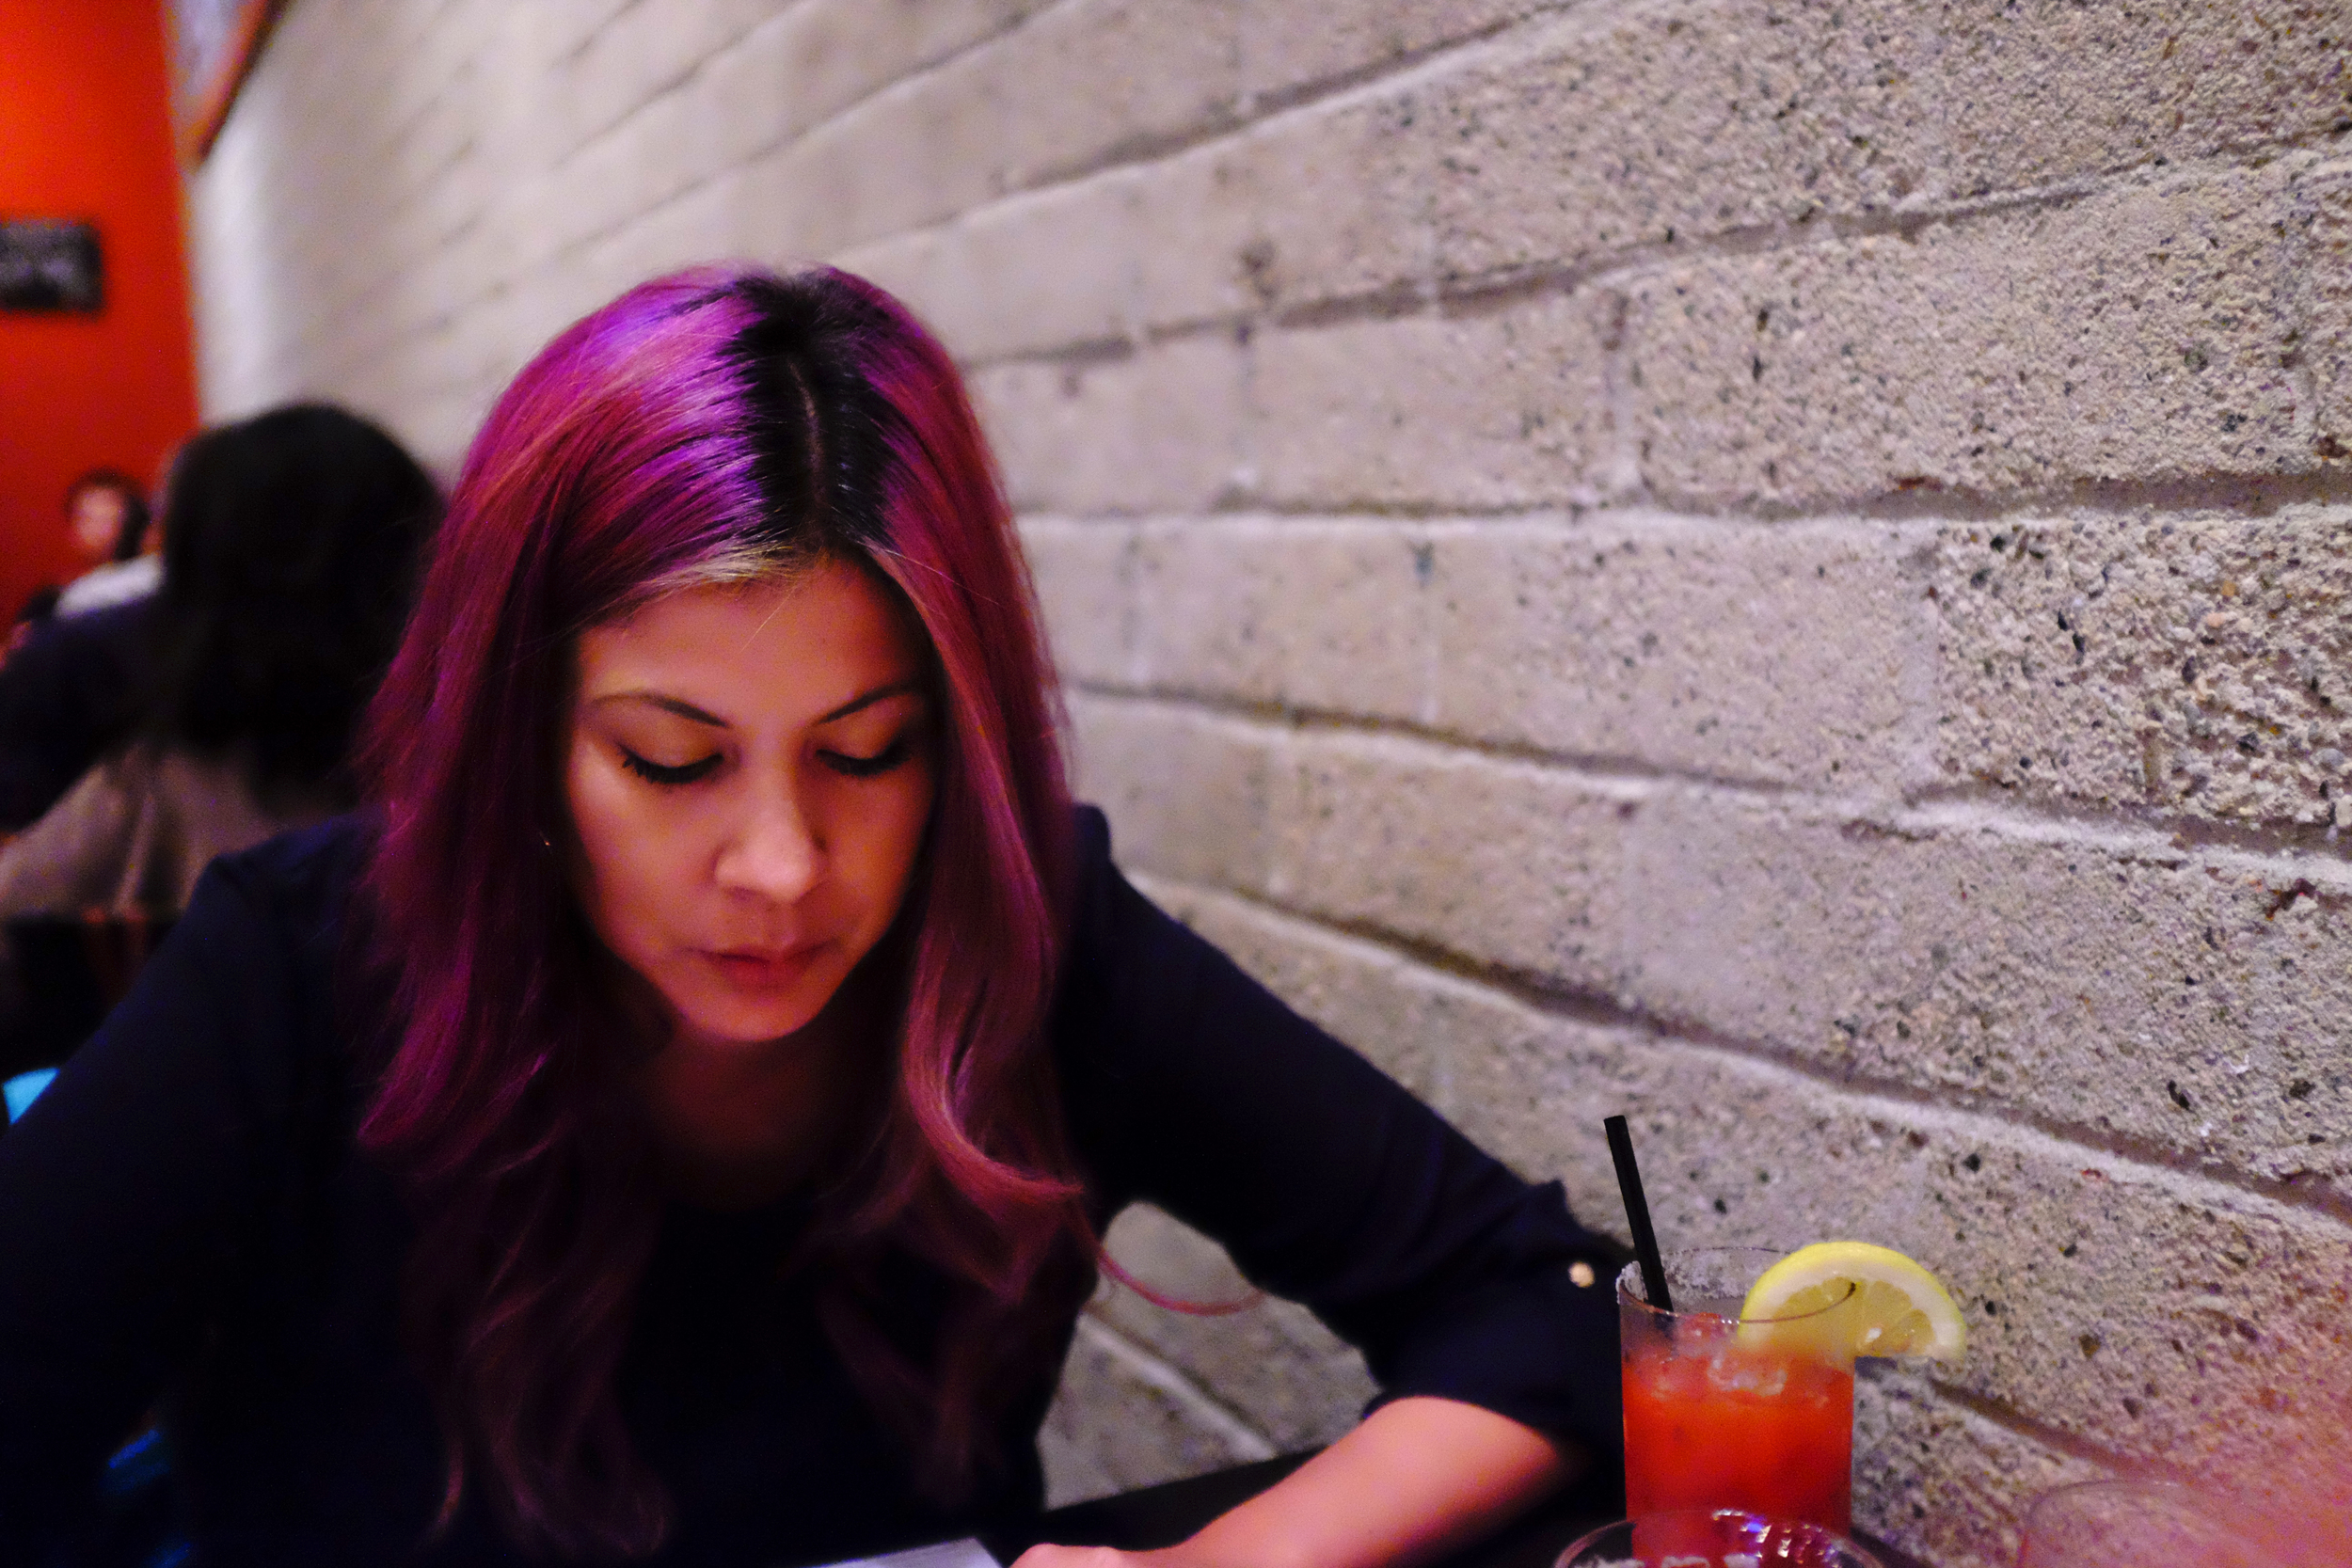 My gorgeous wife at dinner for our 7th Anniversary. Super low light portrait manual focused with the Fuji x100s.